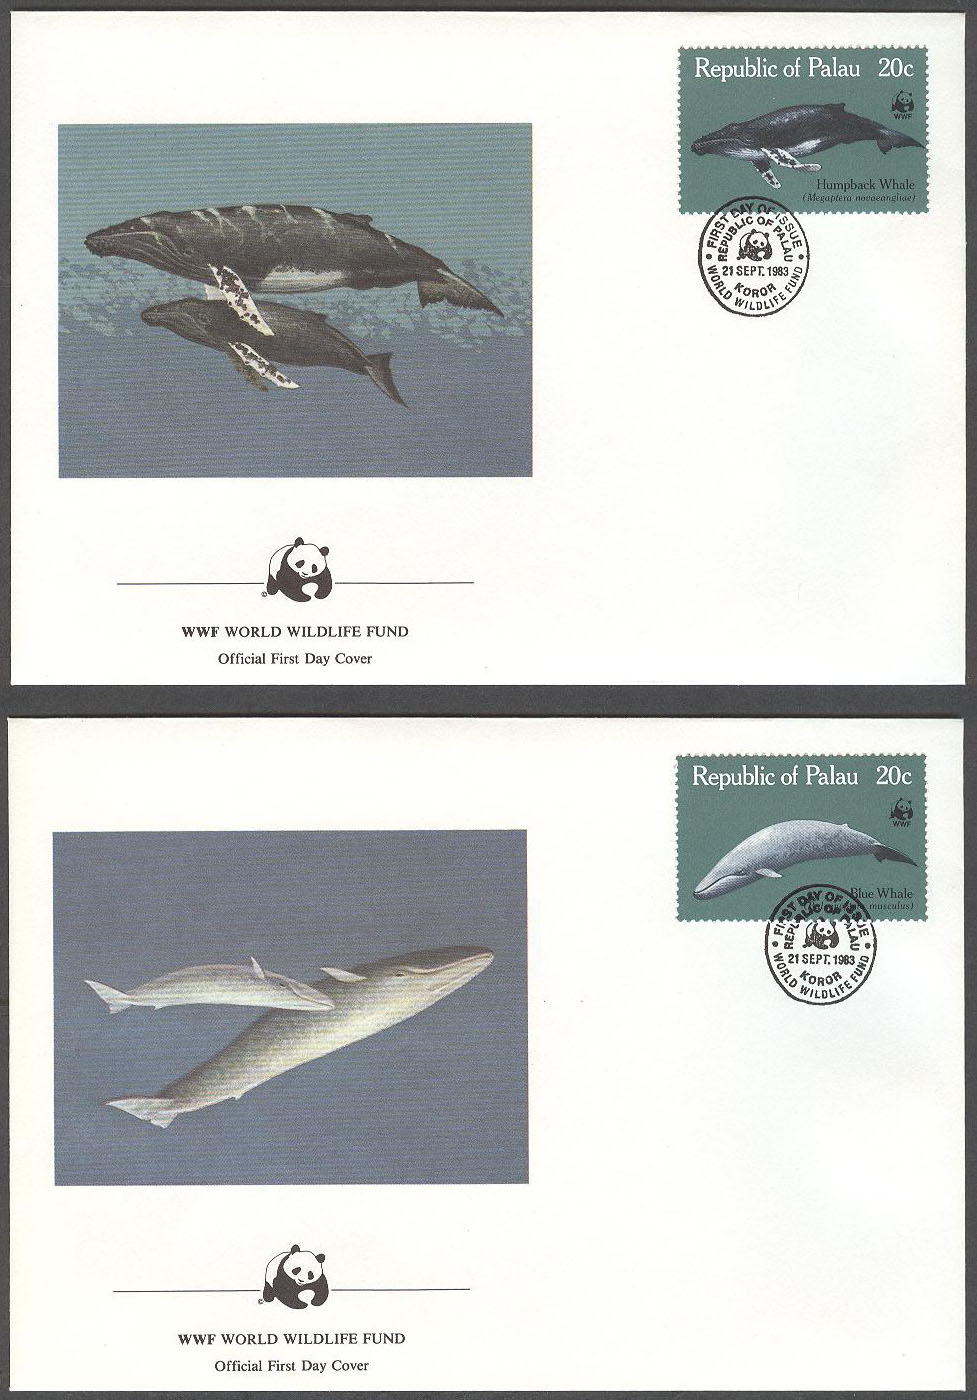 Palau - FDC 1983-09-21 - Valar - Naturskydd - WWF, serie 4 kpl